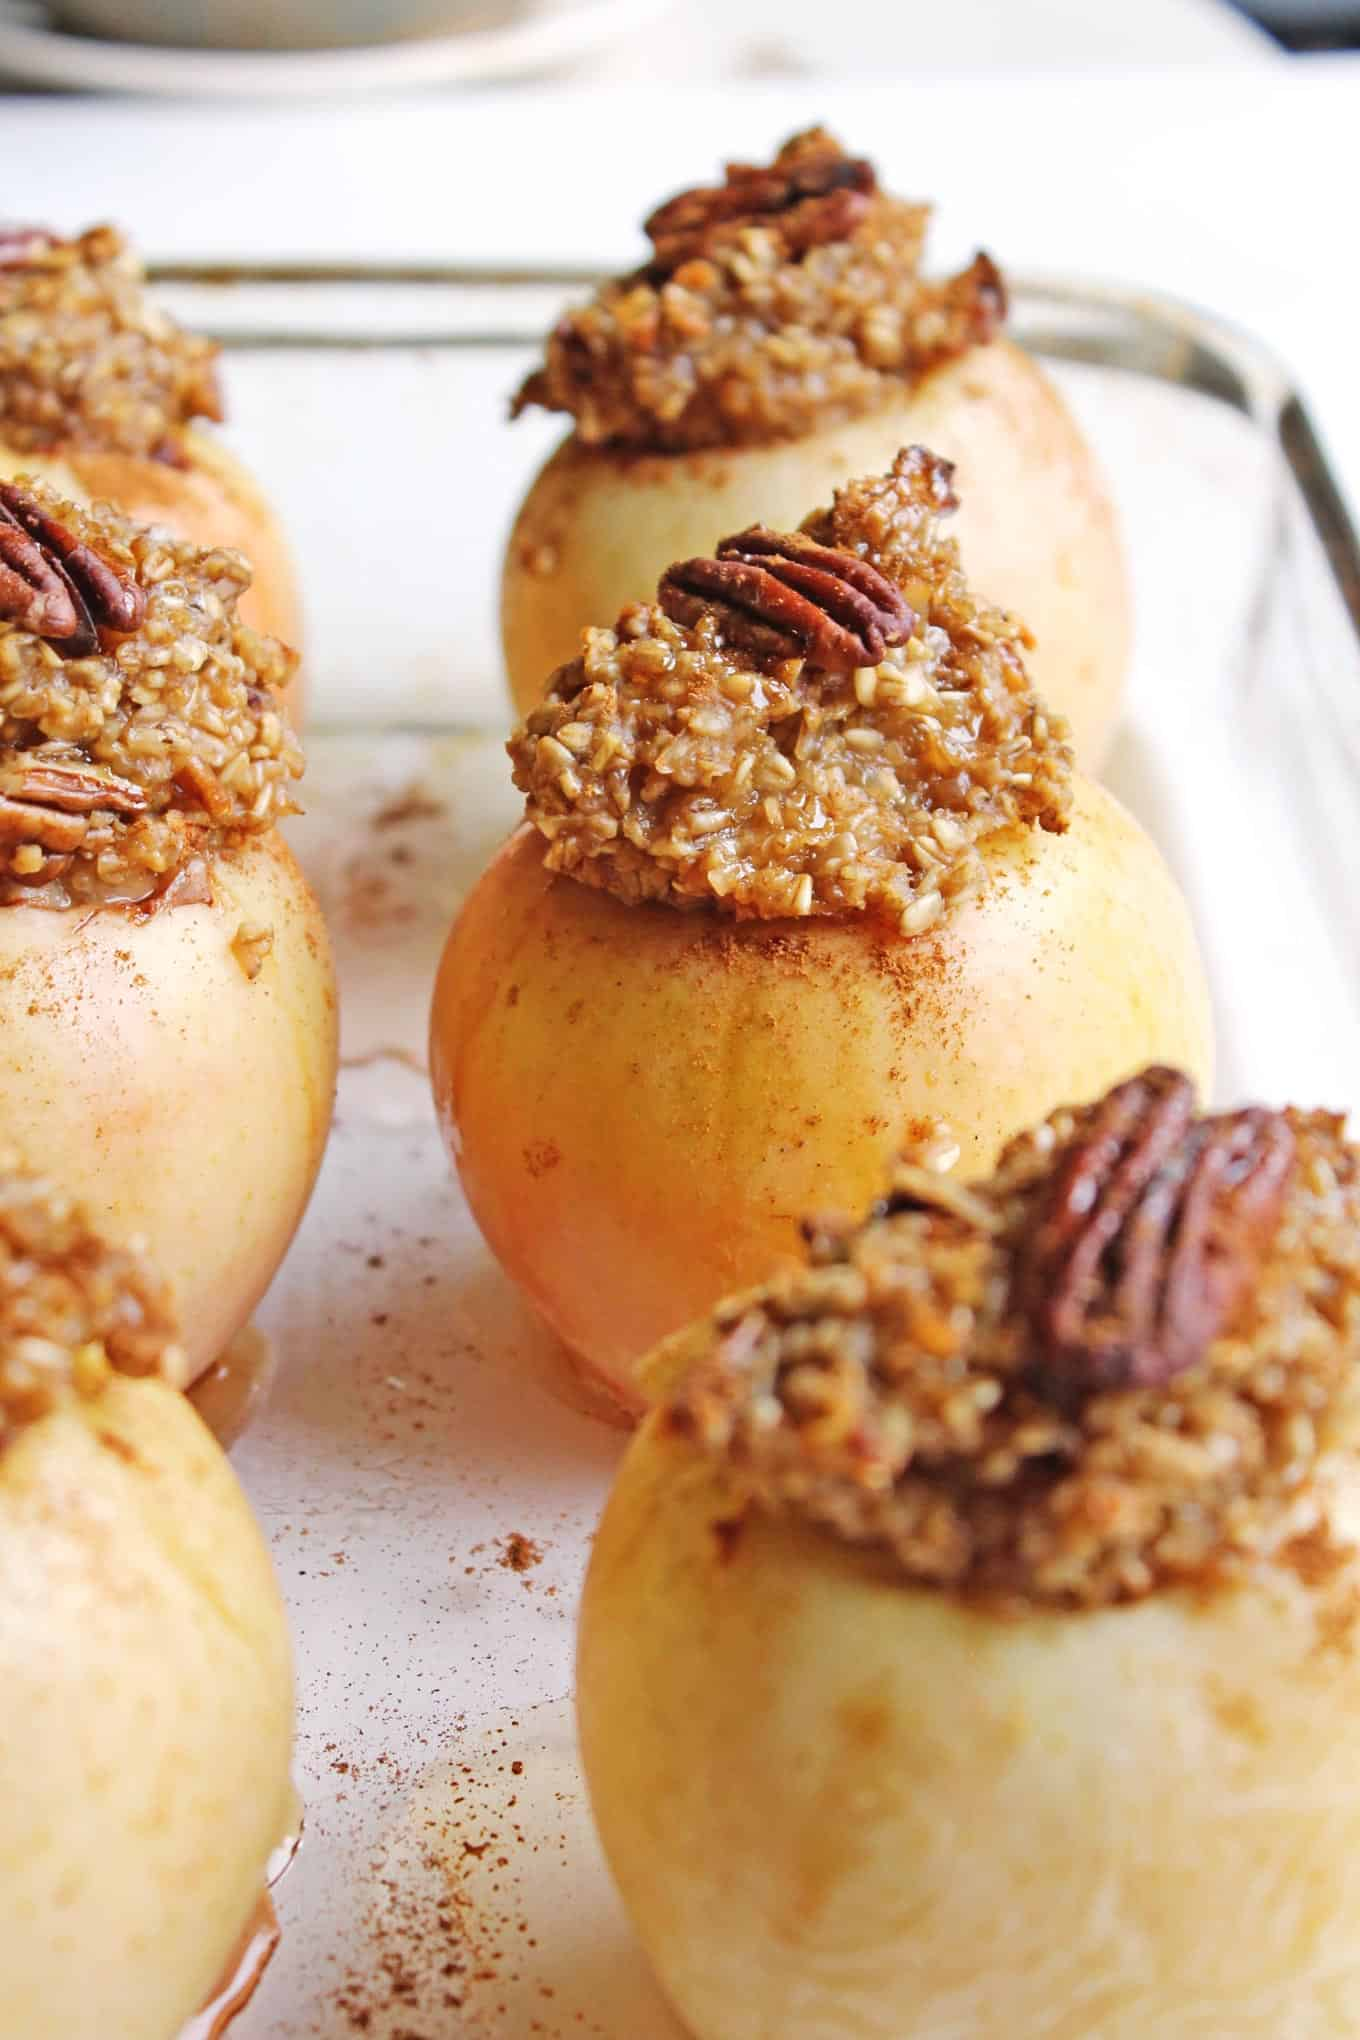 Oatmeal baked apples with pecans